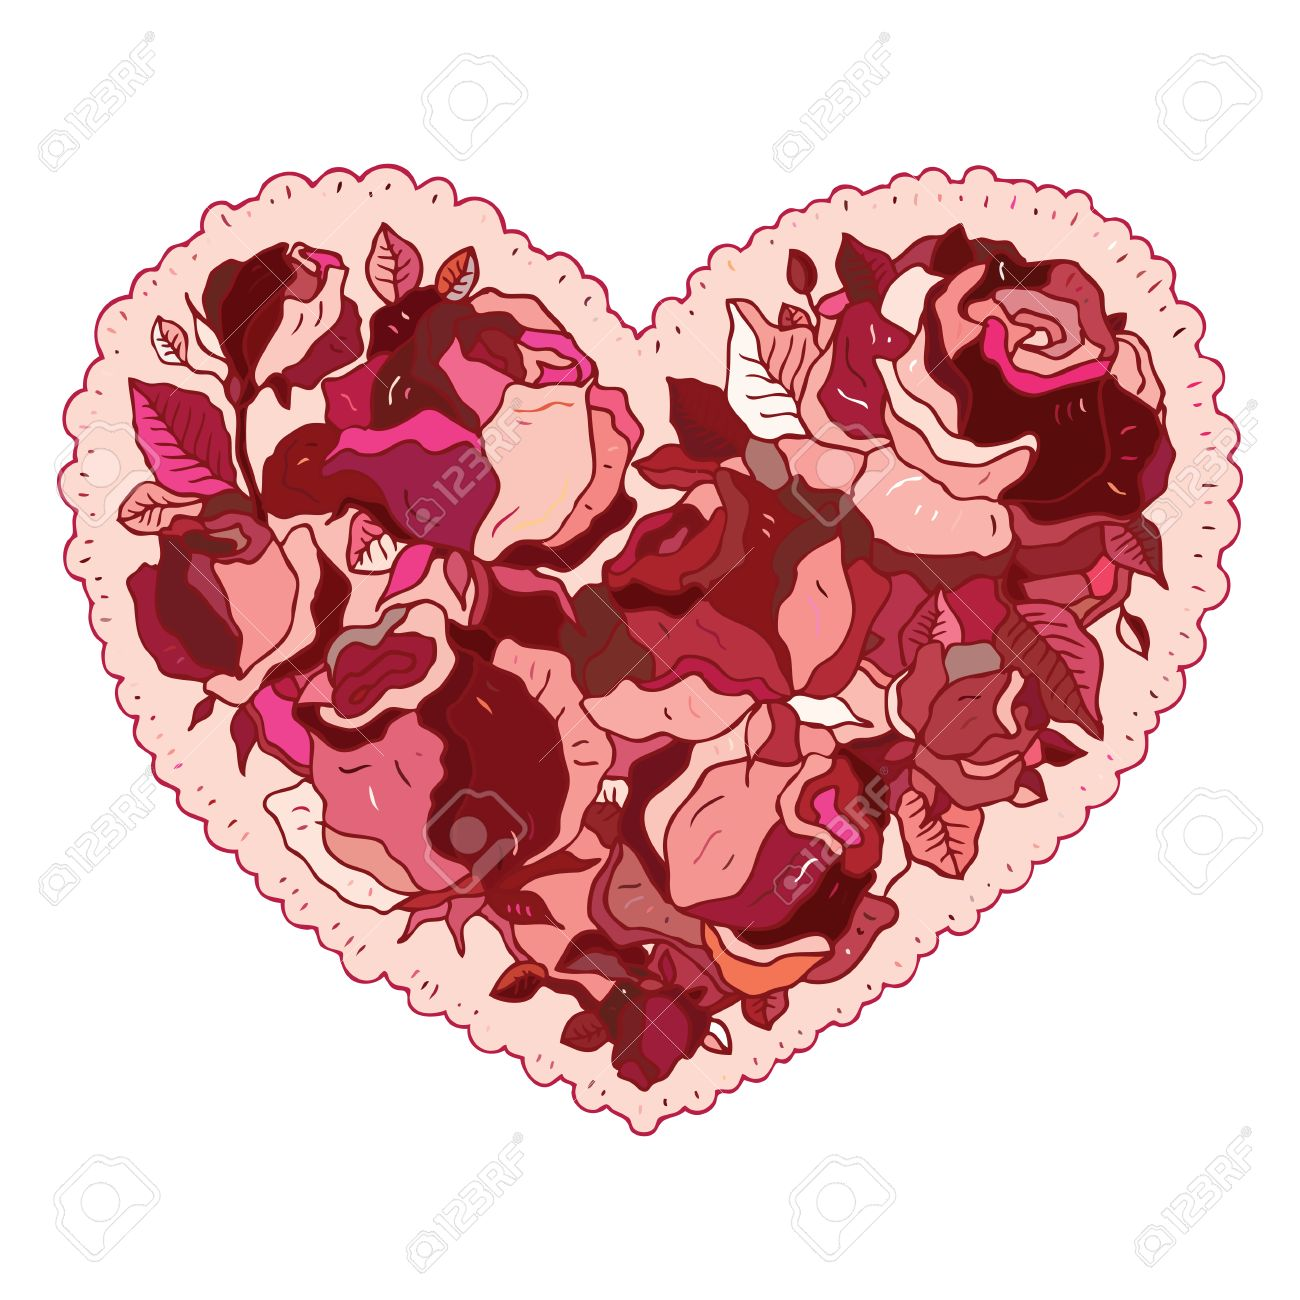 Elegance pattern Heart of flowers roses. Valentine Greeting card. Hand drawn vector illustration. Stock Vector - 24579879